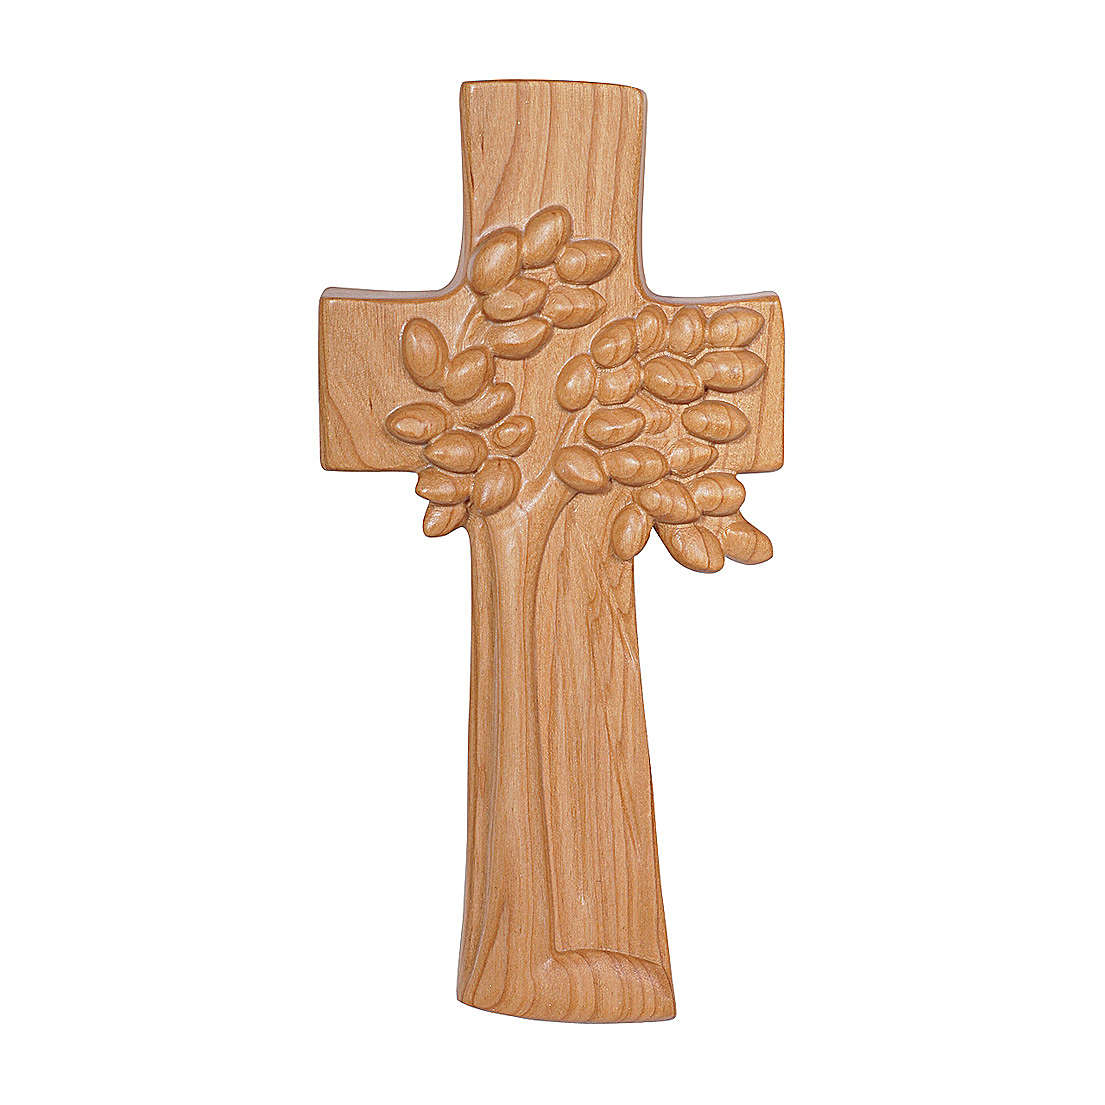 The Tree of Life cross in cherry wood satinized Ambiente Design Valgardena 4